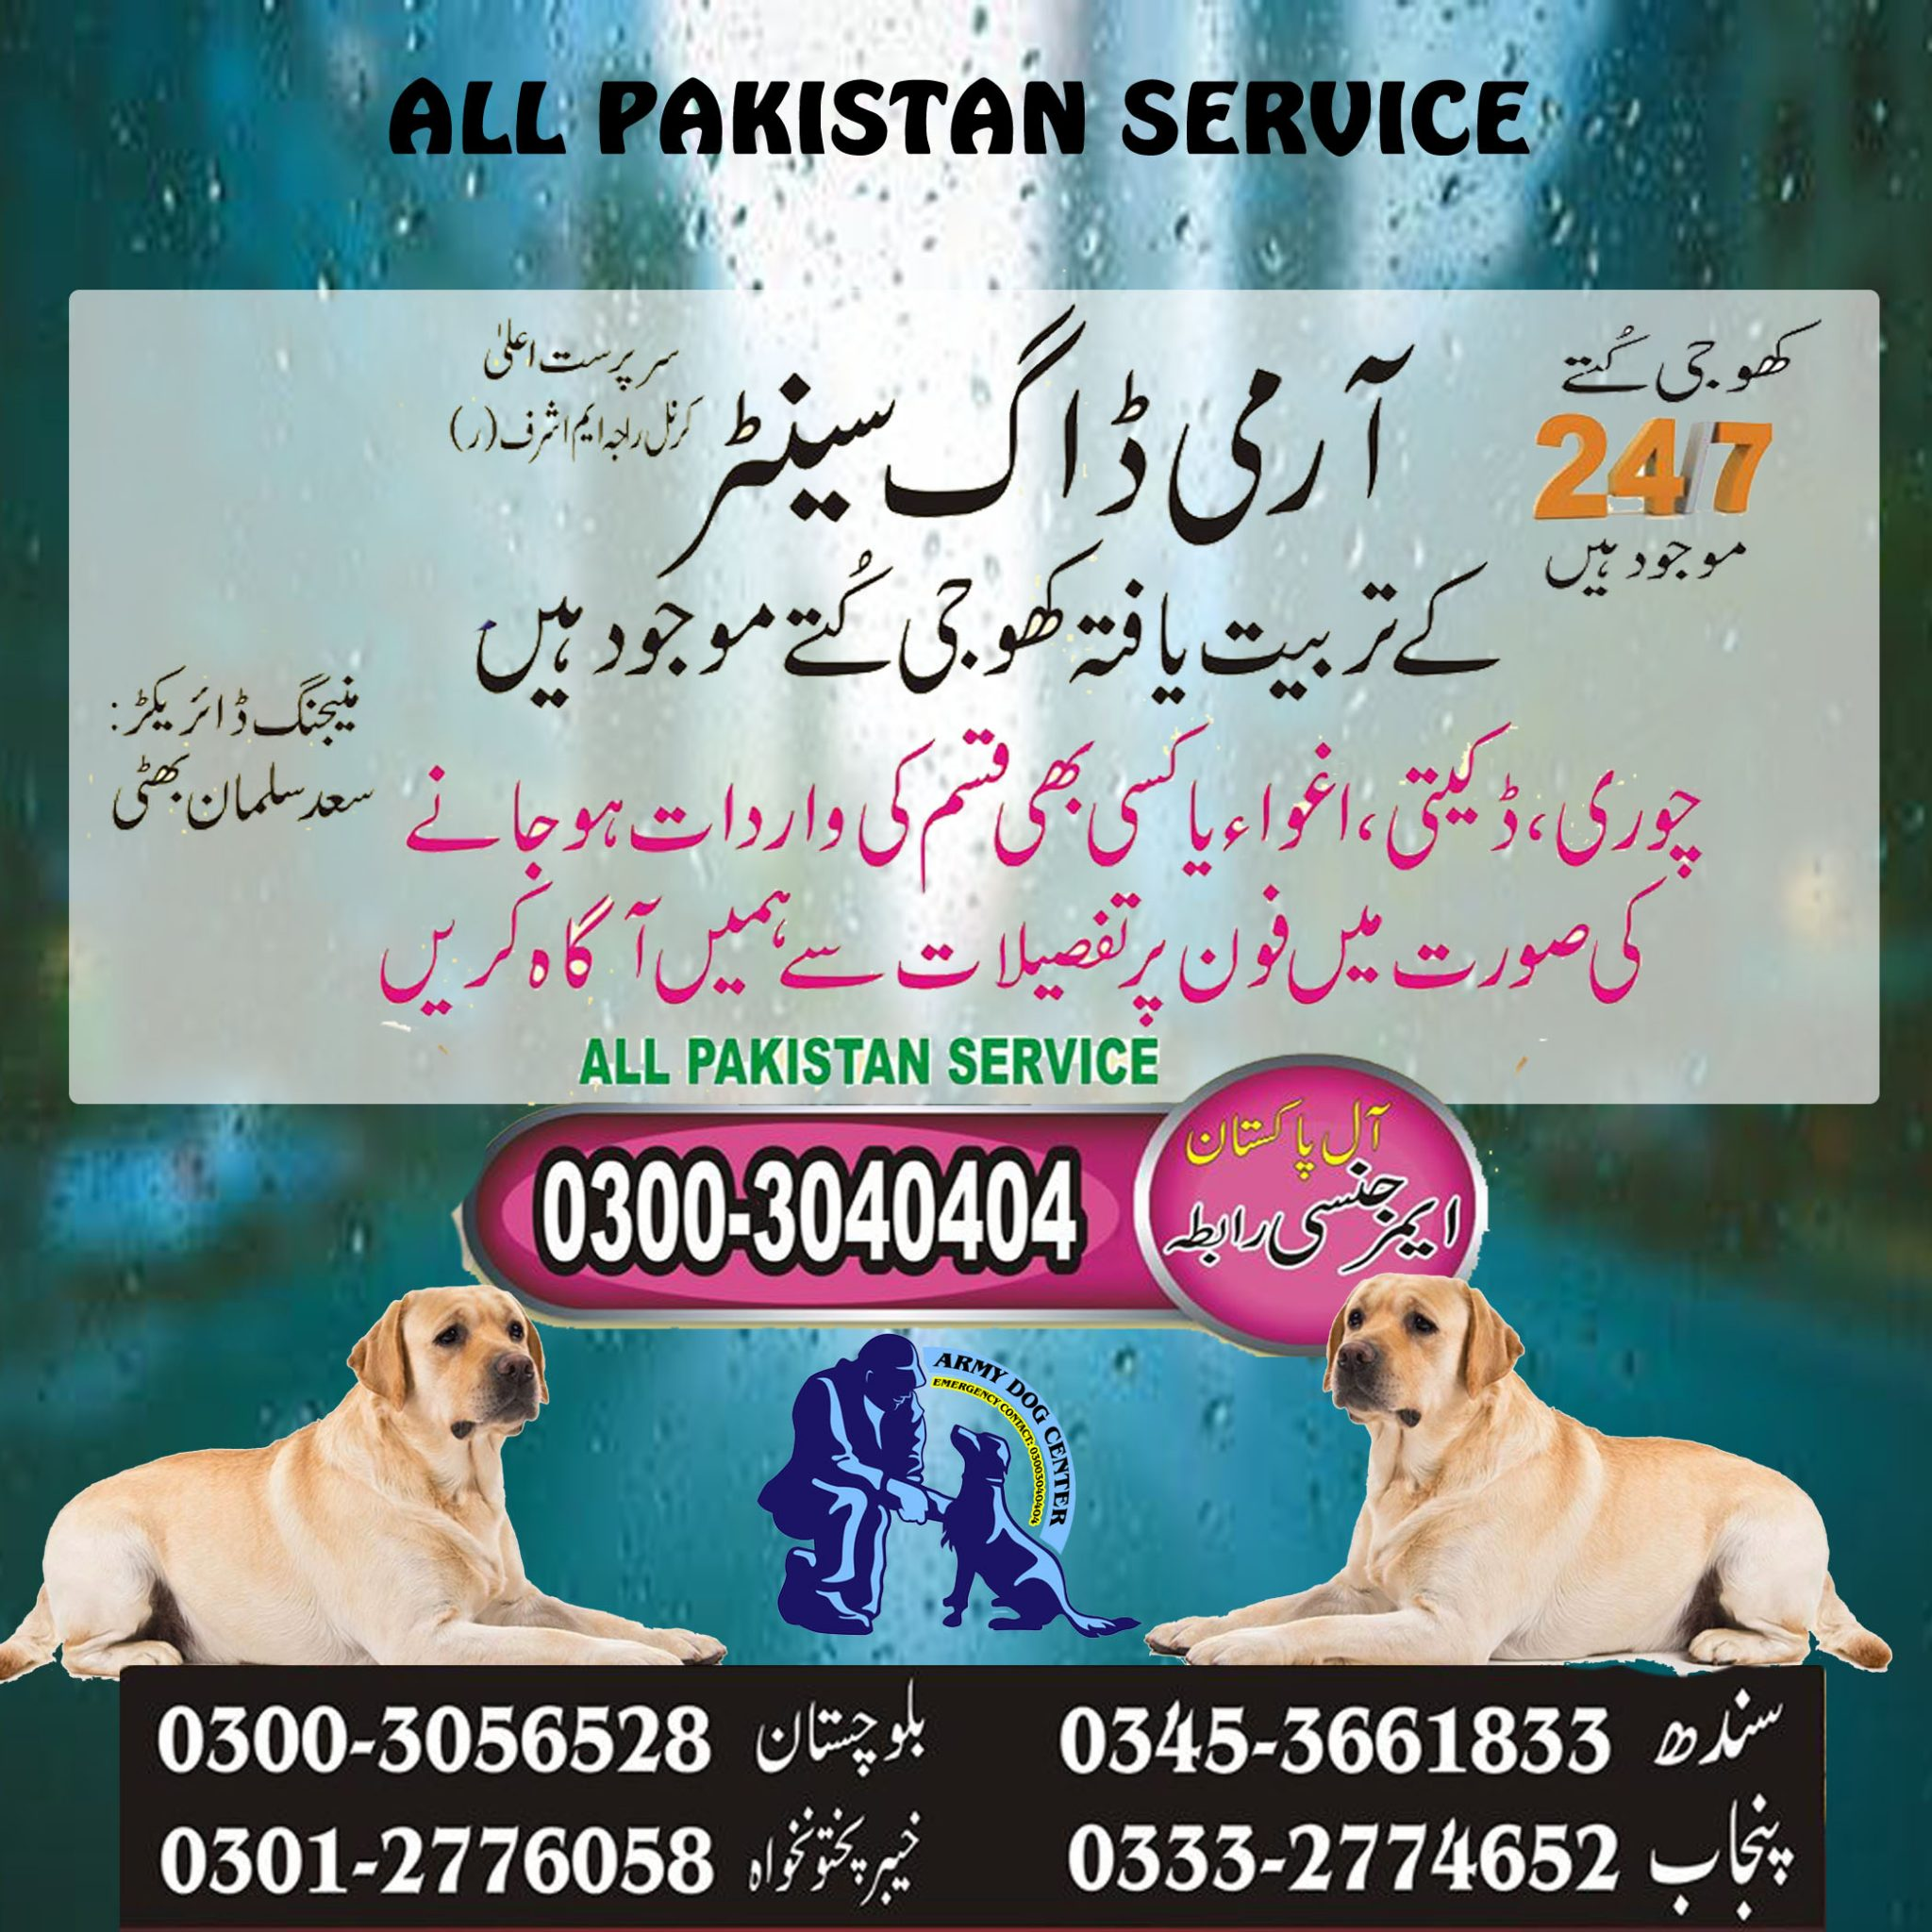 Dog Center Balochistan Pakistan Superb Service